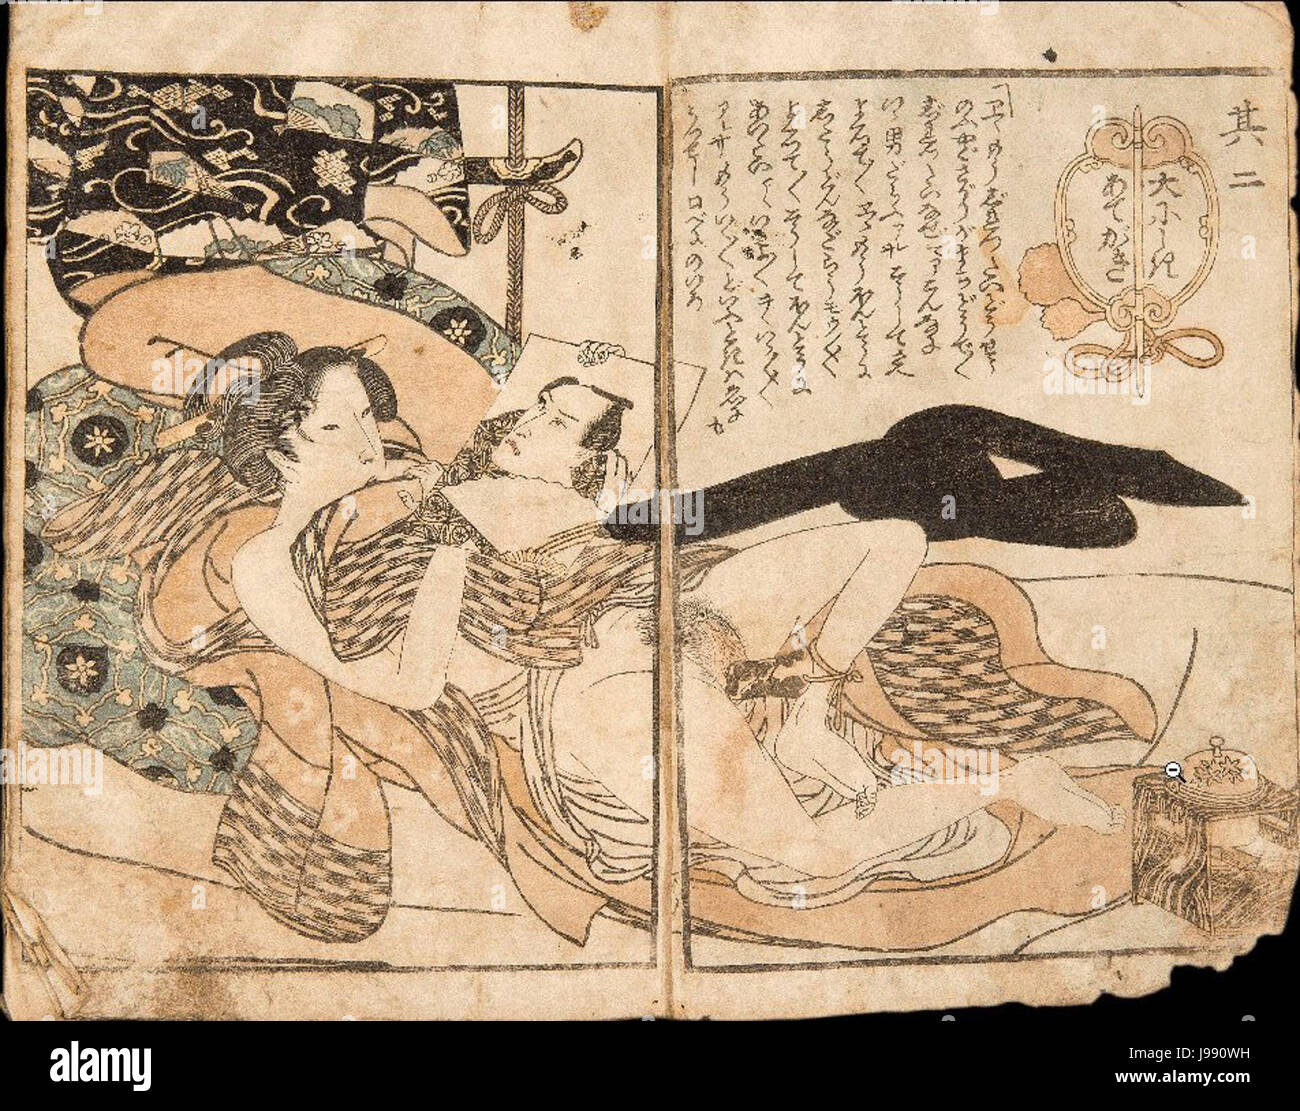 Toyokuni I The Great Brocade Addressee (Onishiki ategaki), vol. 3 of 3, c. 1780s 1820s - Stock Image